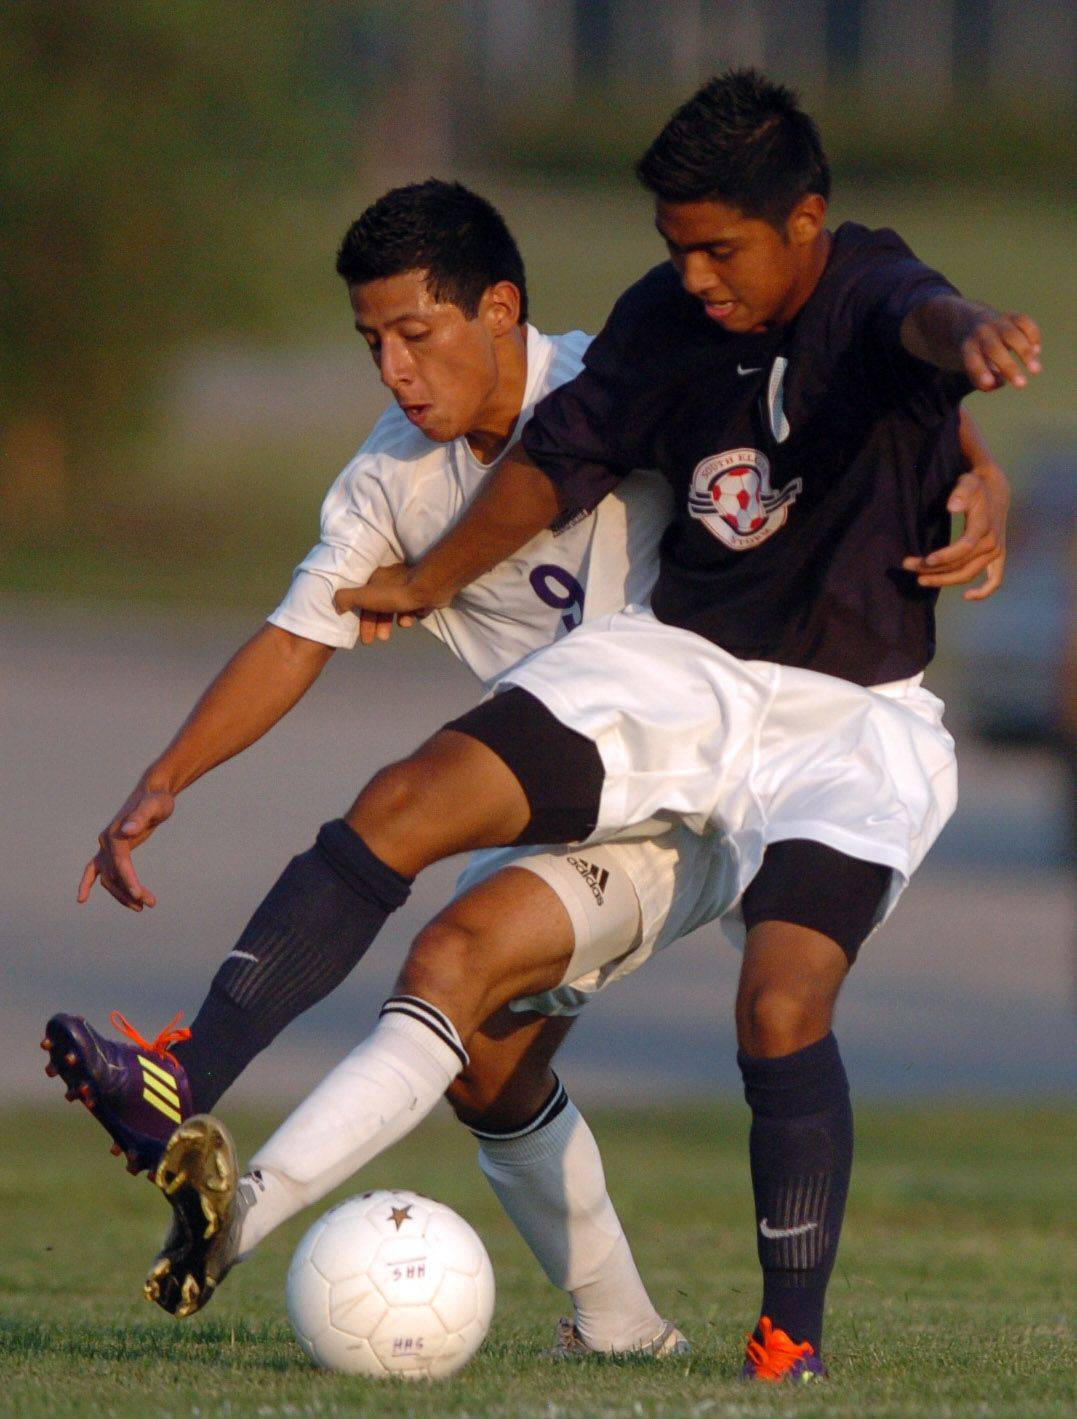 Ismael Morales of Hampshire, left, tries to steal the ball from Alberto Bustamante of South Elgin during action at Hampshire Thursday night.